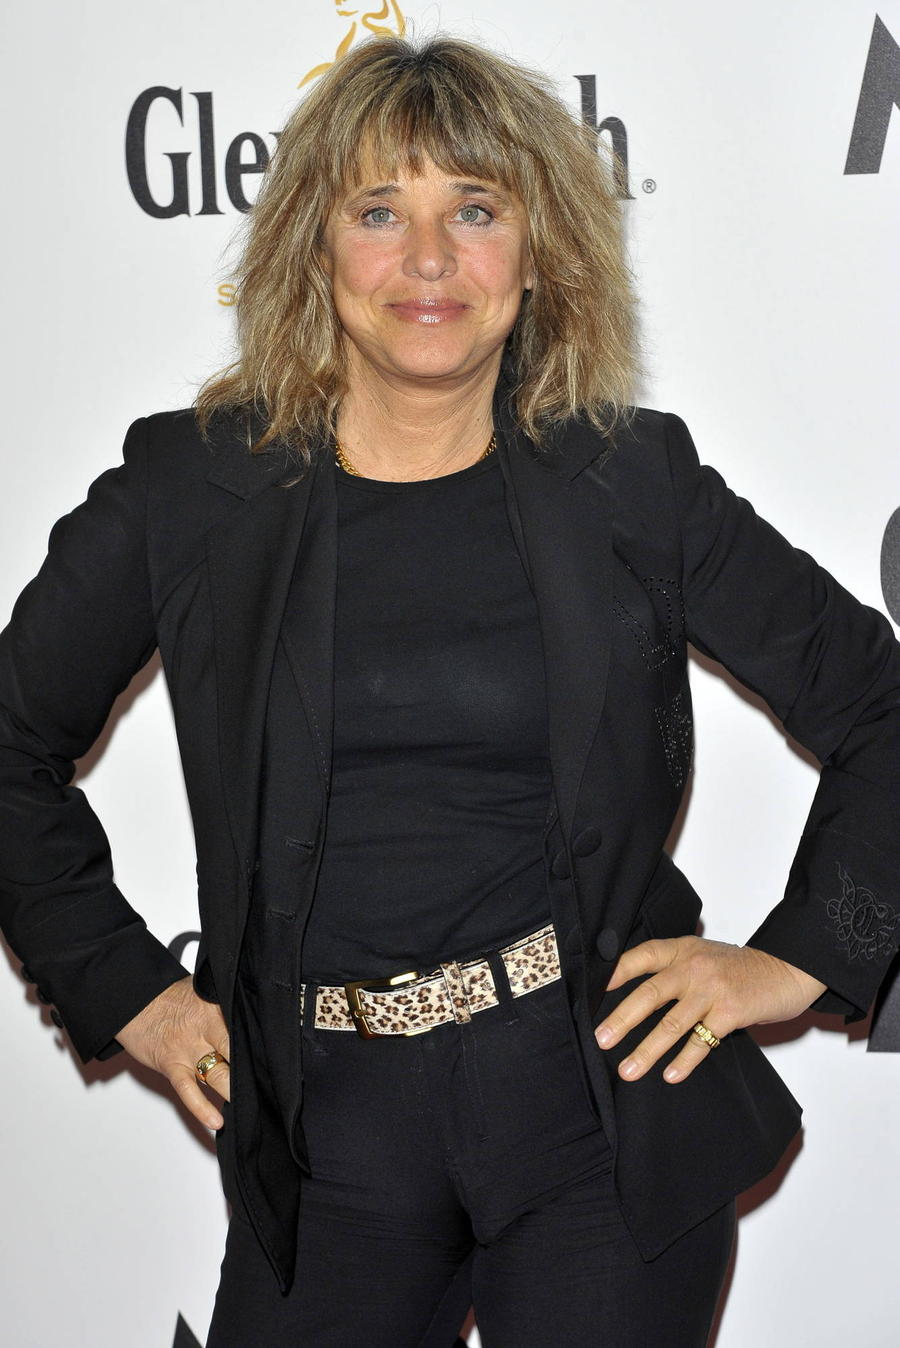 Suzi Quatro Set For Honorary Doctorate